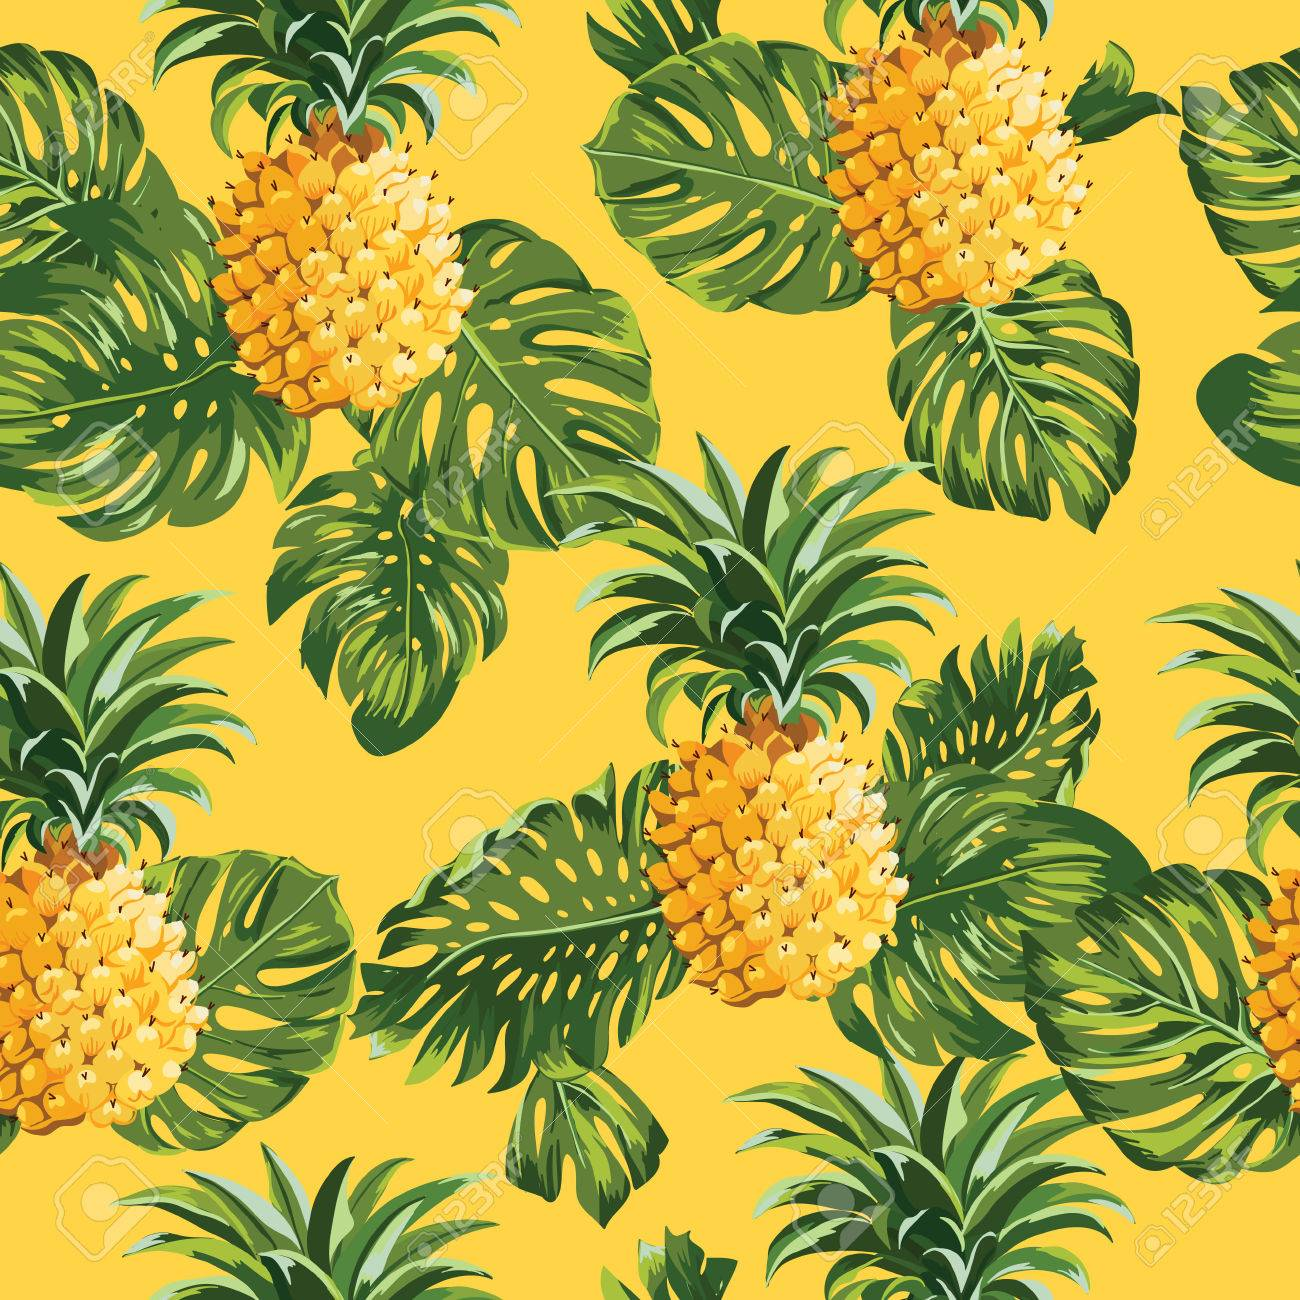 pinapples and tropical leaves background vintage seamless pattern